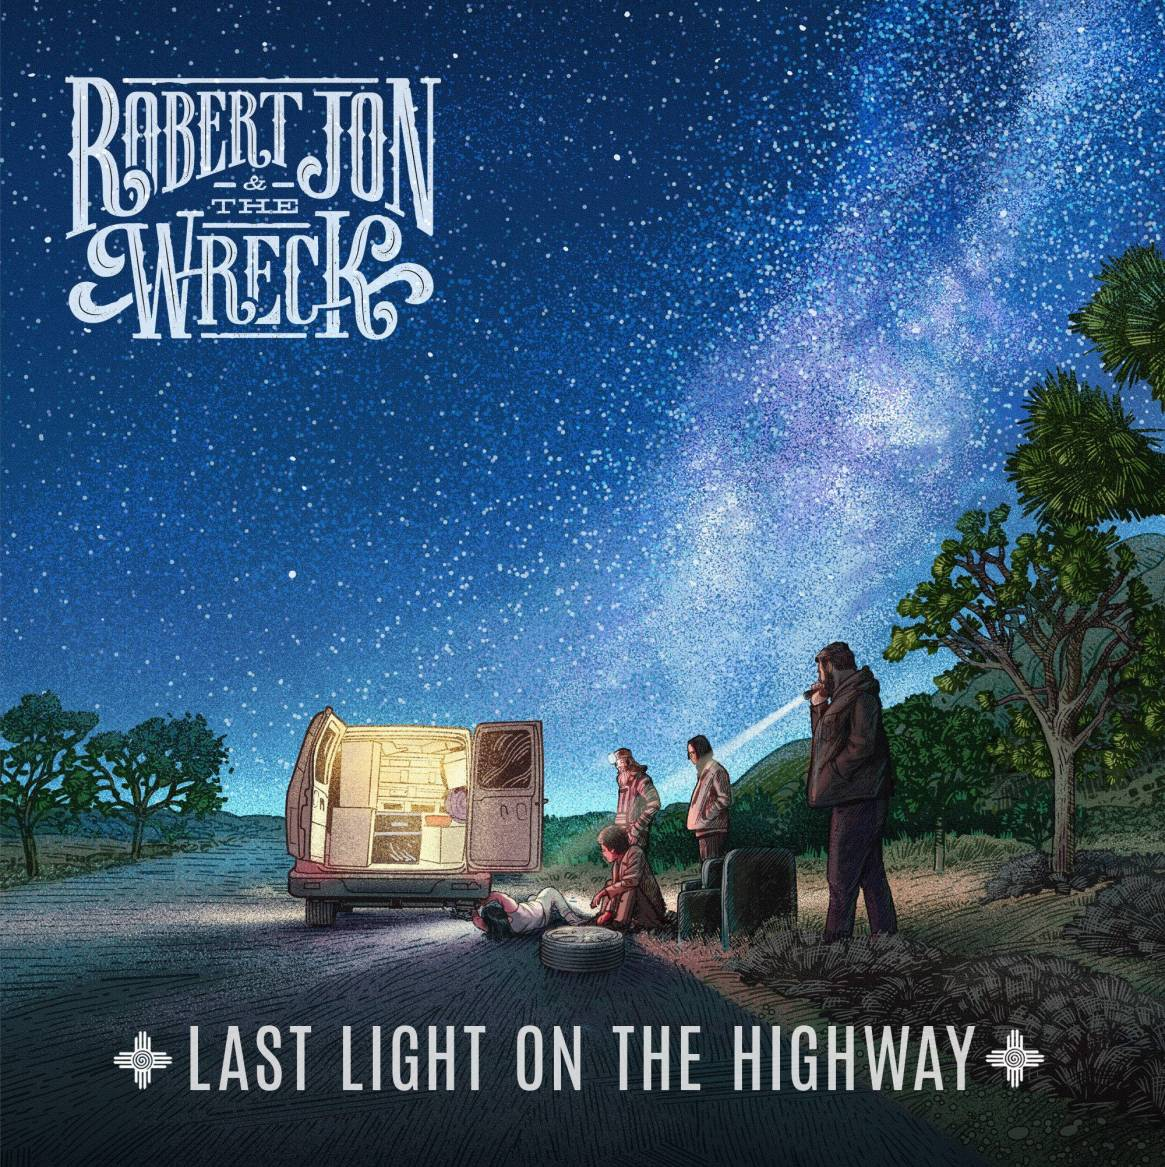 Robert-Jon-and-The-Wreck-Last-Light-On-The-Highway